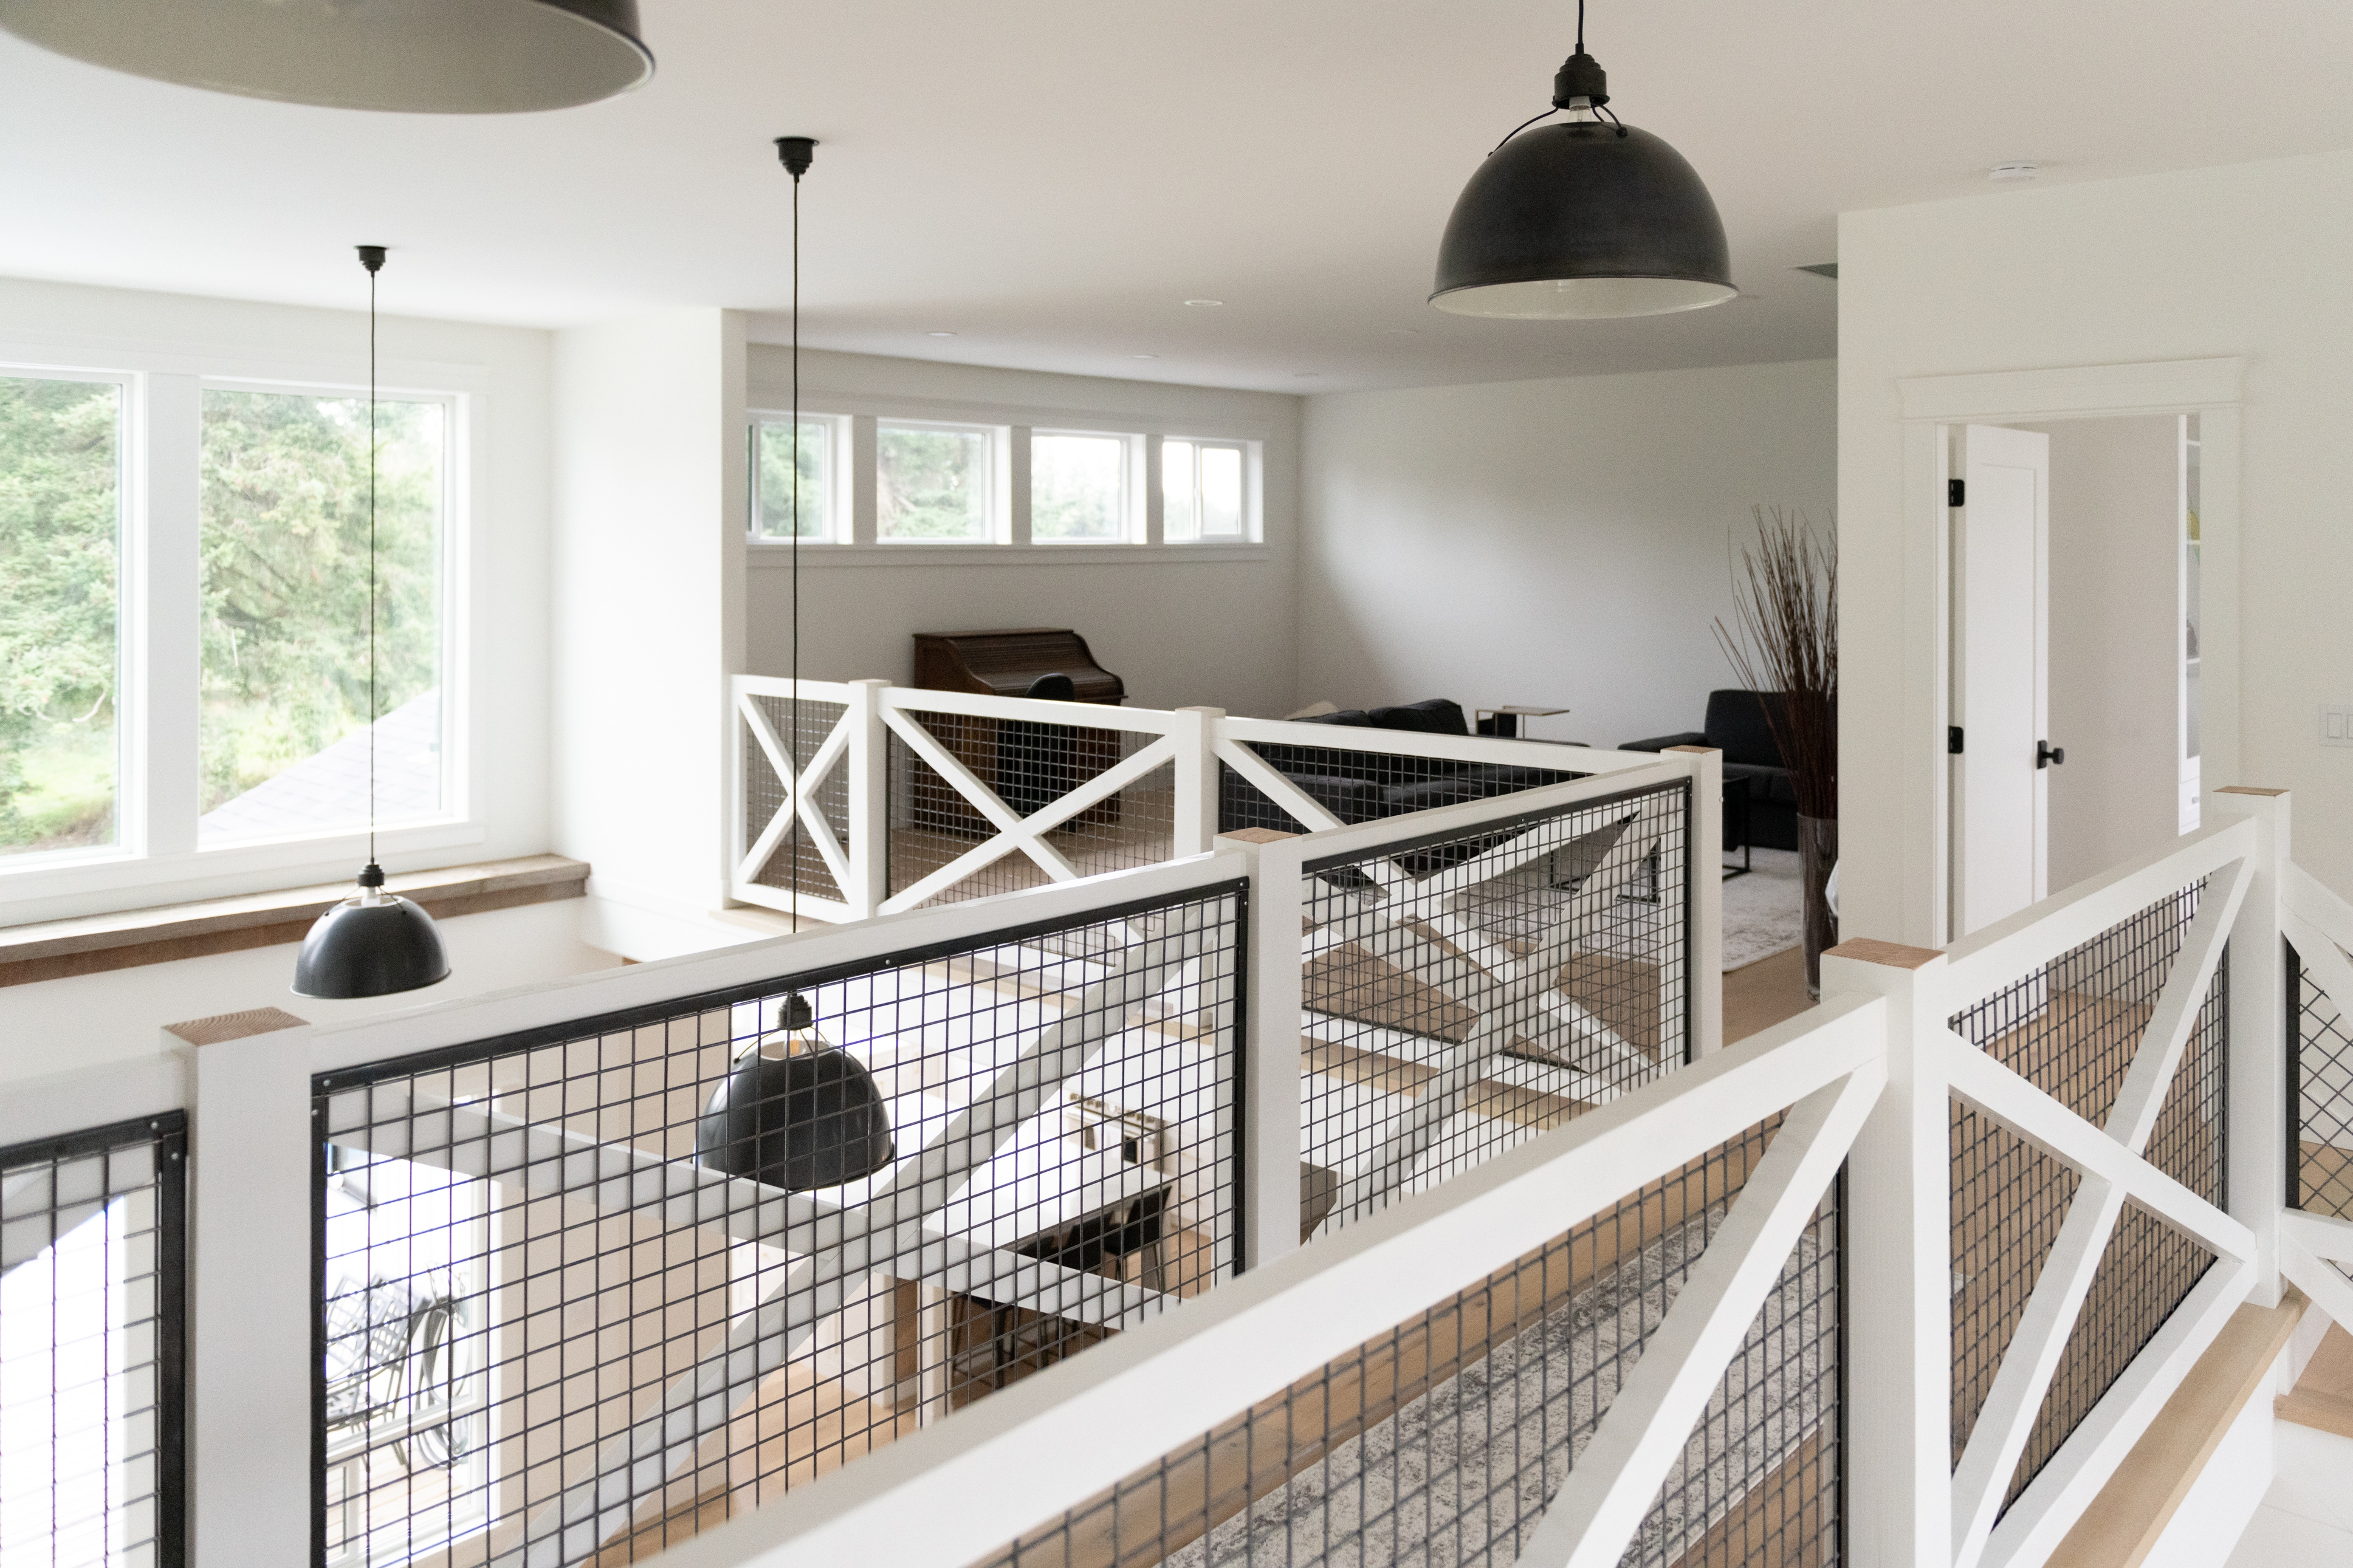 Staircase Railing Styles That Will Elevate Your Design Merit   Modern Farmhouse Stair Railing   Horizontal Bar   Exterior   Mid Century Modern   Design Small House   Residential